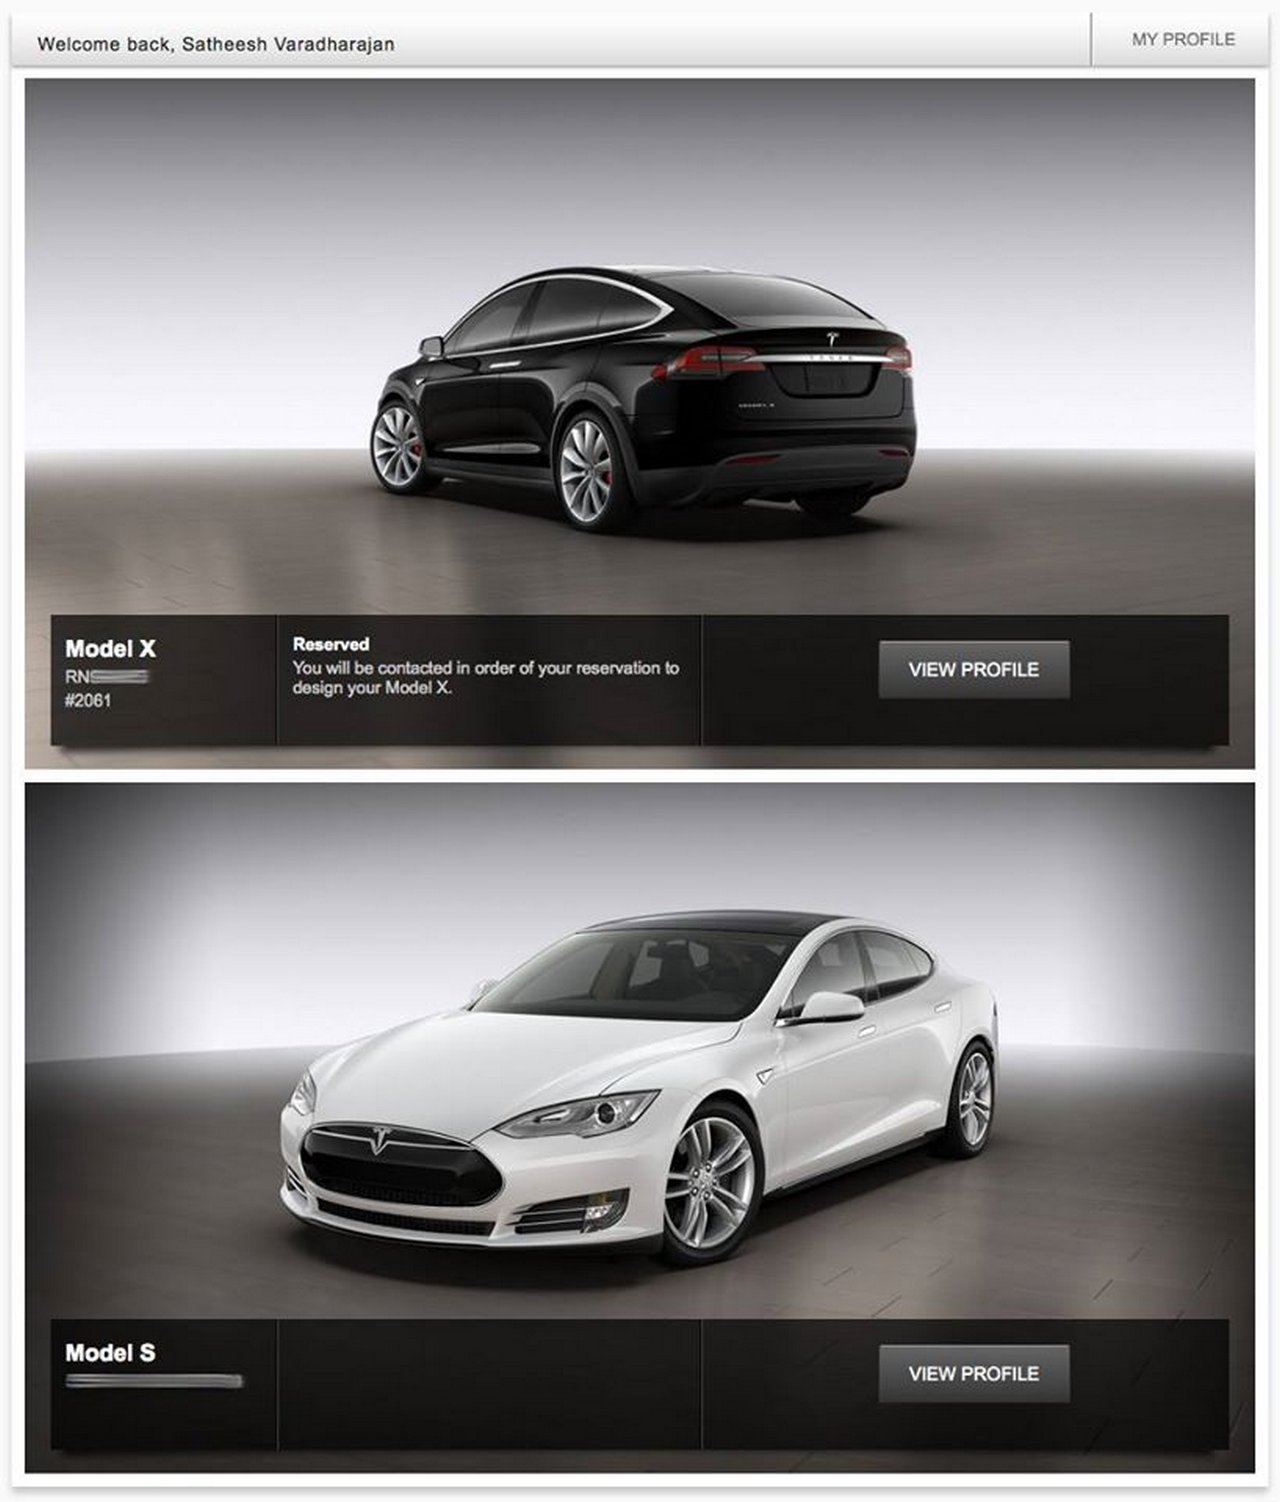 tesla-model-x-prezzo-price-final-production_0-100_11